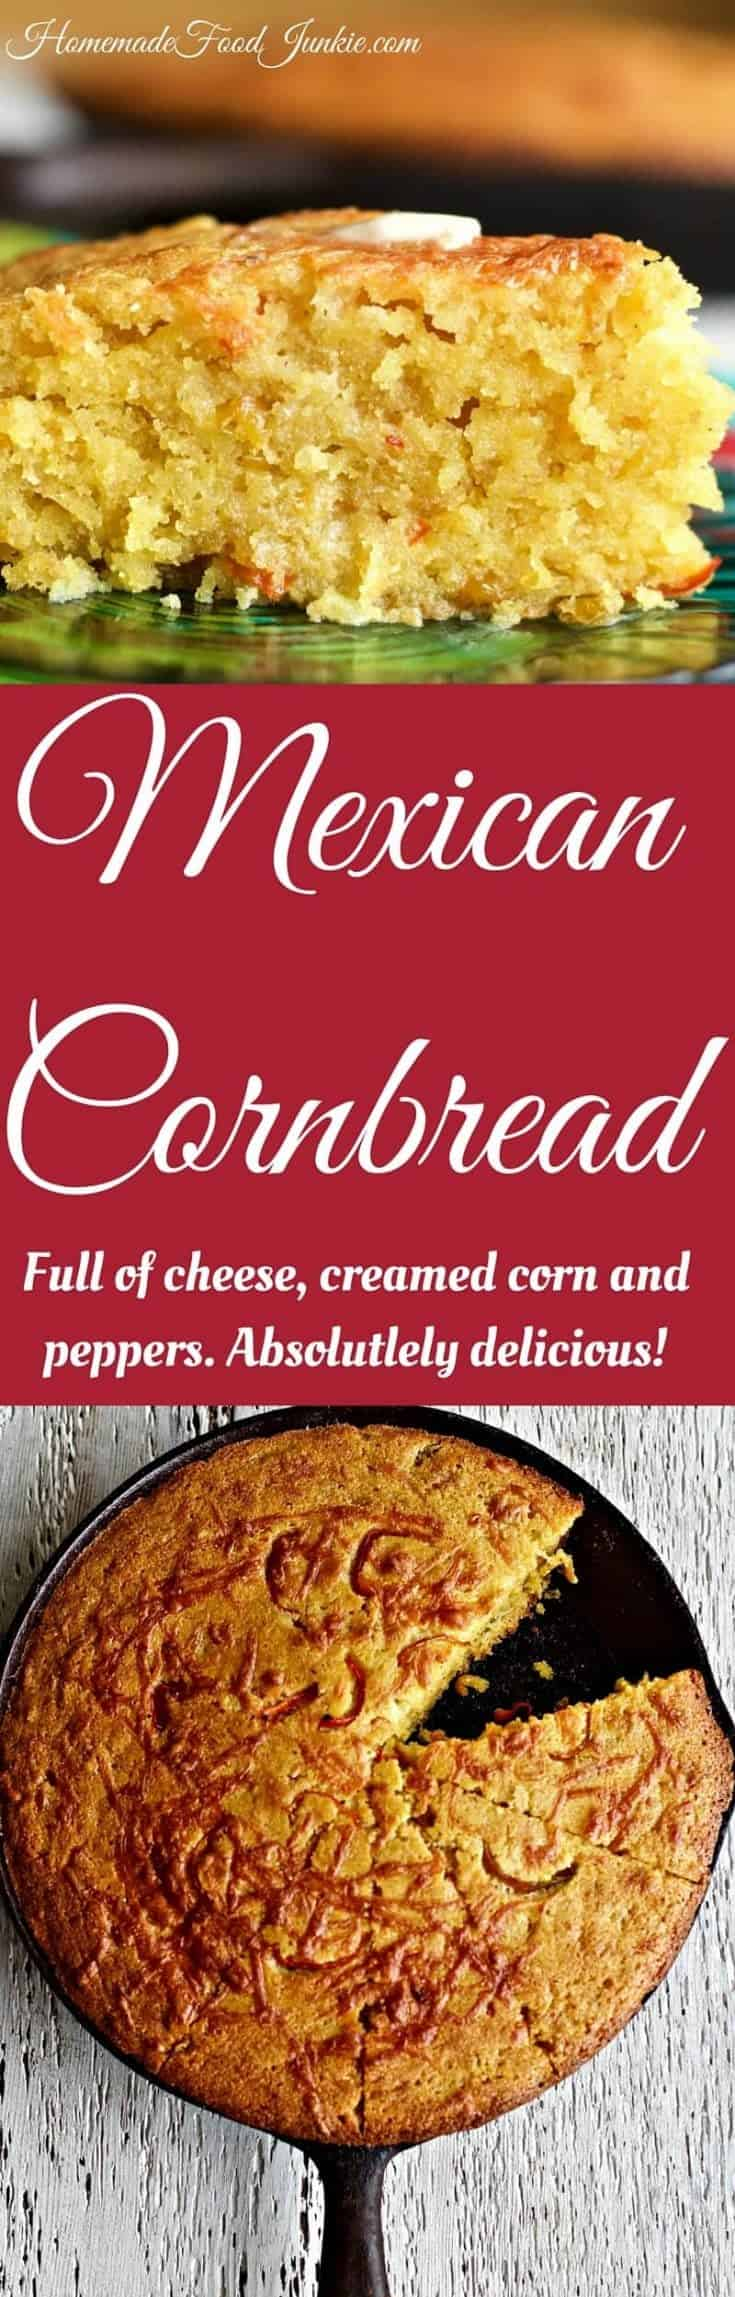 Mexican Cornbread is a moist, slightly sweet cornbread flavored with a tiny pepper kick to keep it interesting #cornbread #cornbread recipe#mexicancornbread #mexicancornbread recipe #mexicansides #sidedish #soupside #HomemadeFoodJunkie